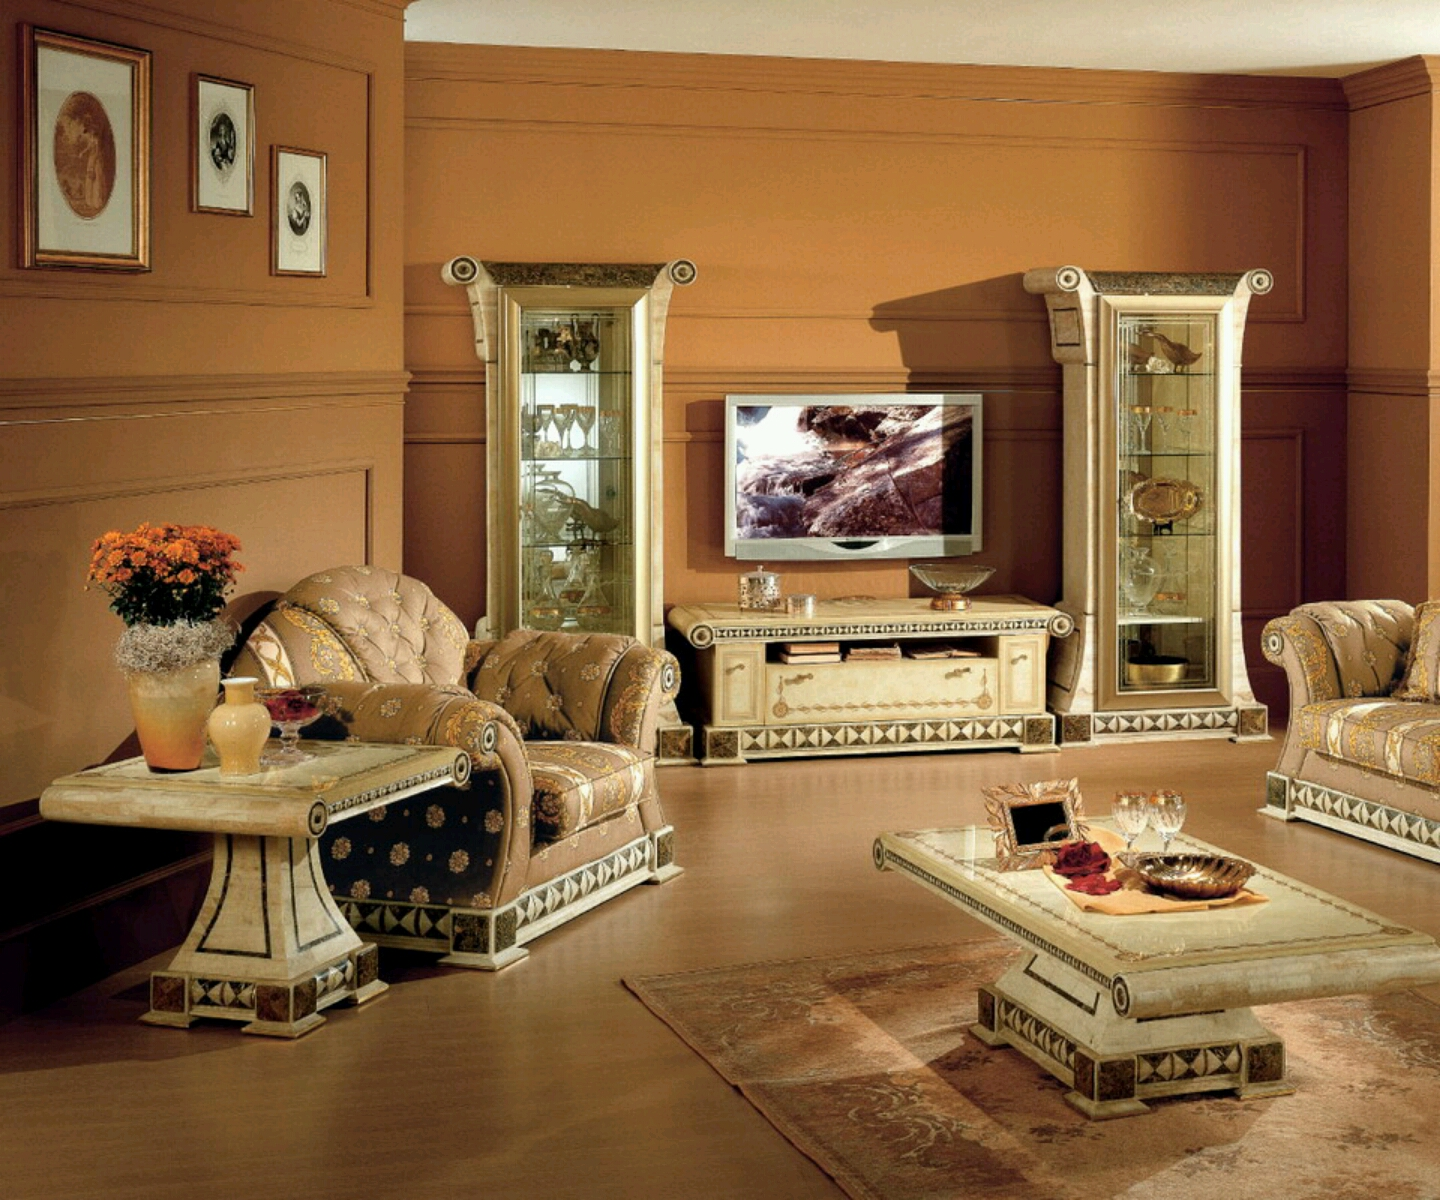 Home Designs October 2012: New Home Designs Latest.: Modern Living Room Designs Ideas